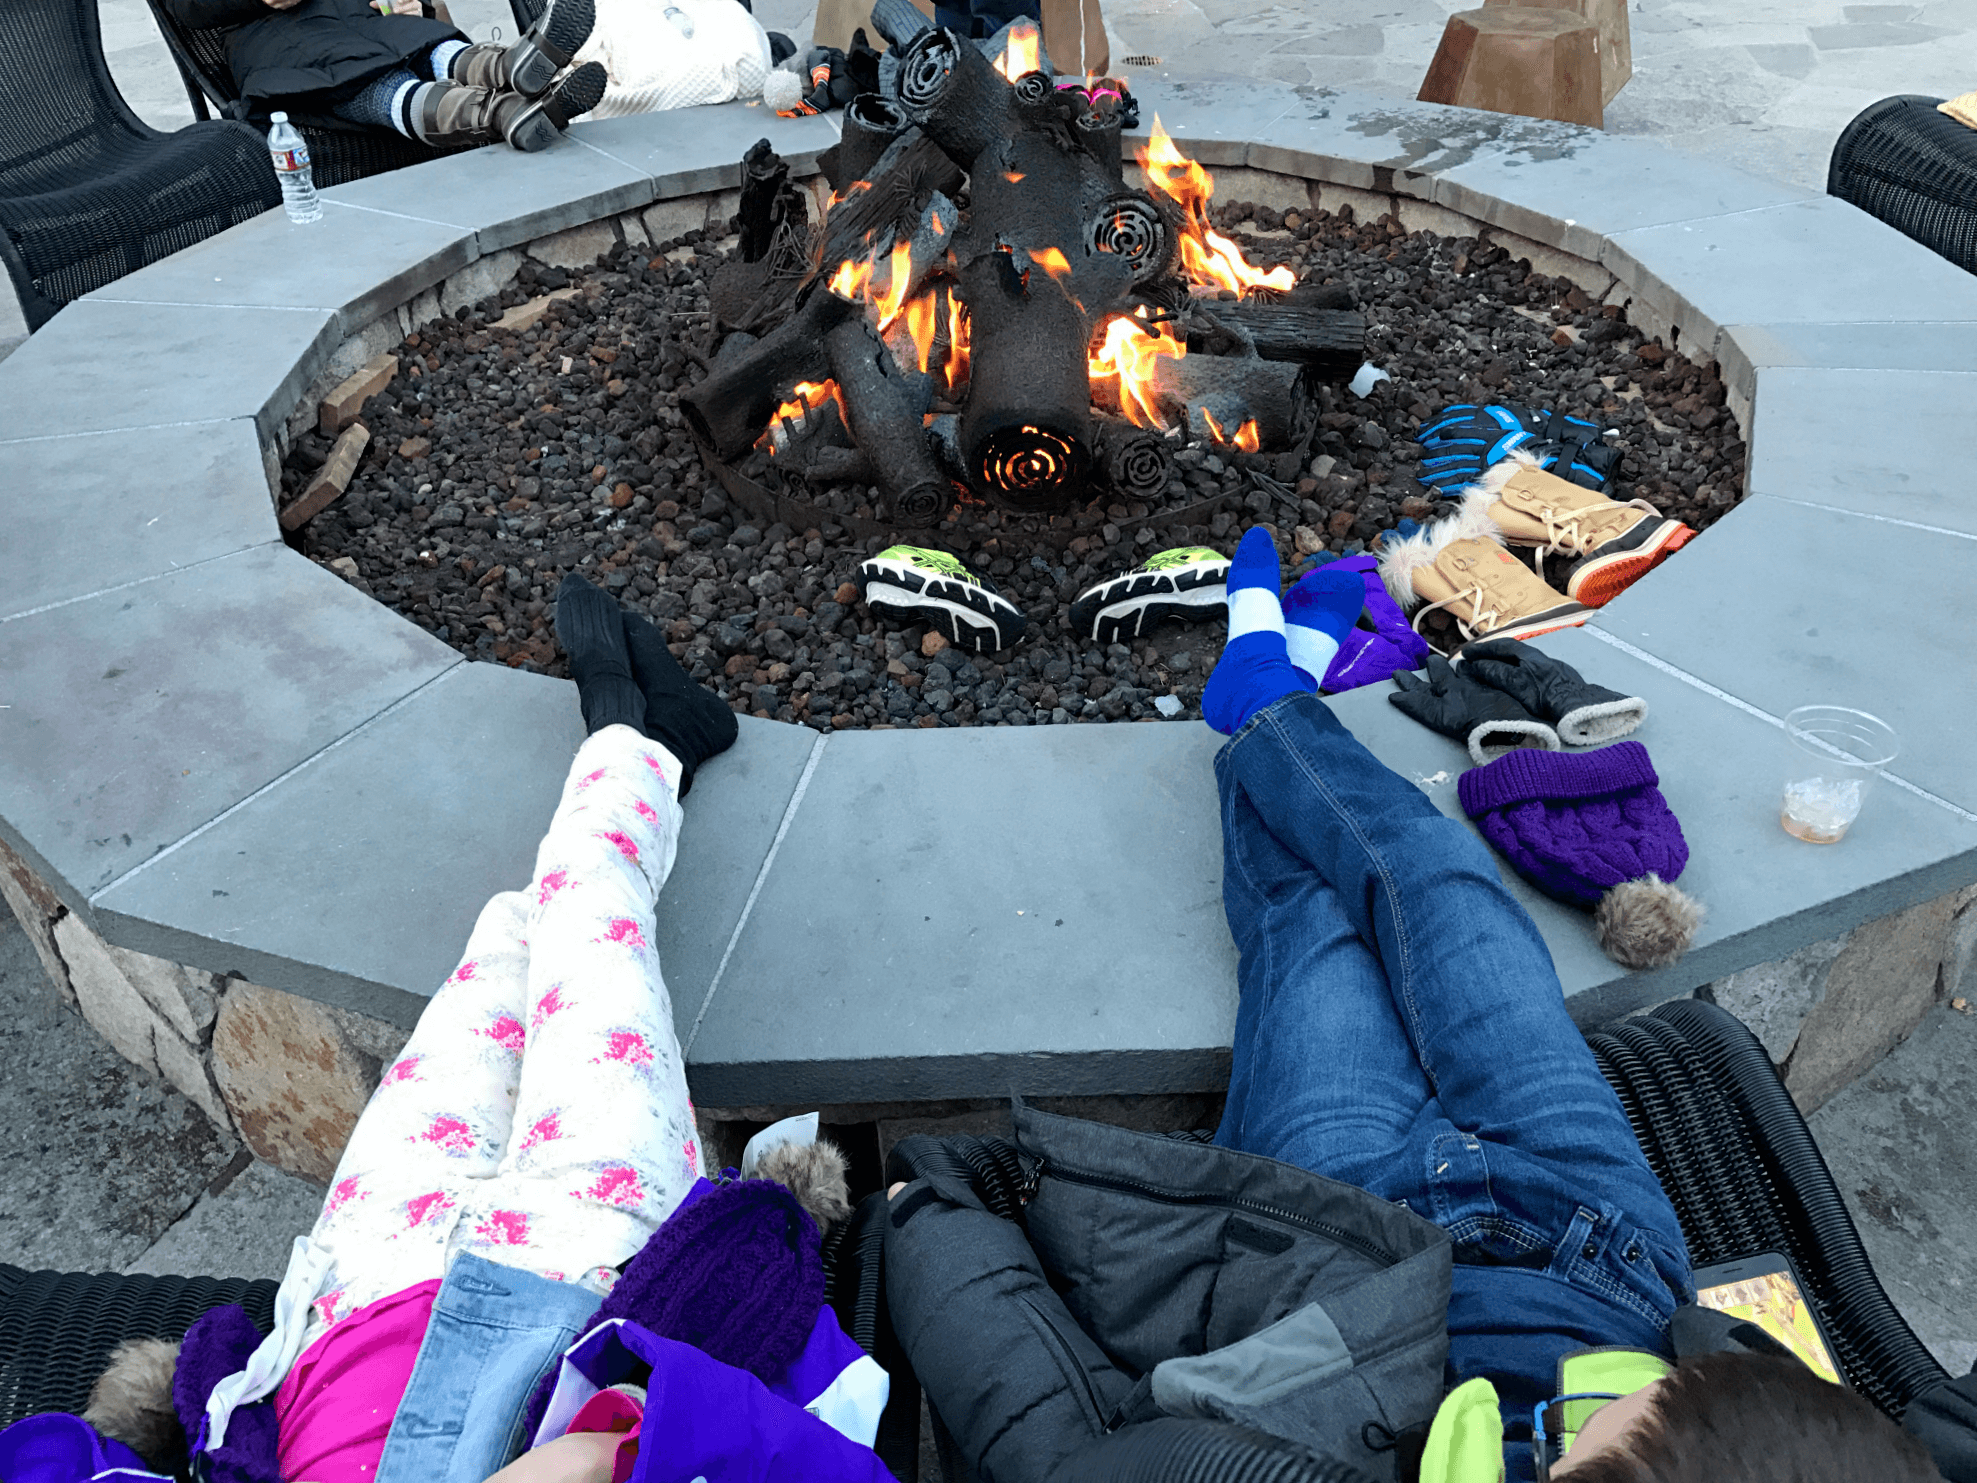 Warming up by the fire at Marshmology at Northstar California with kids